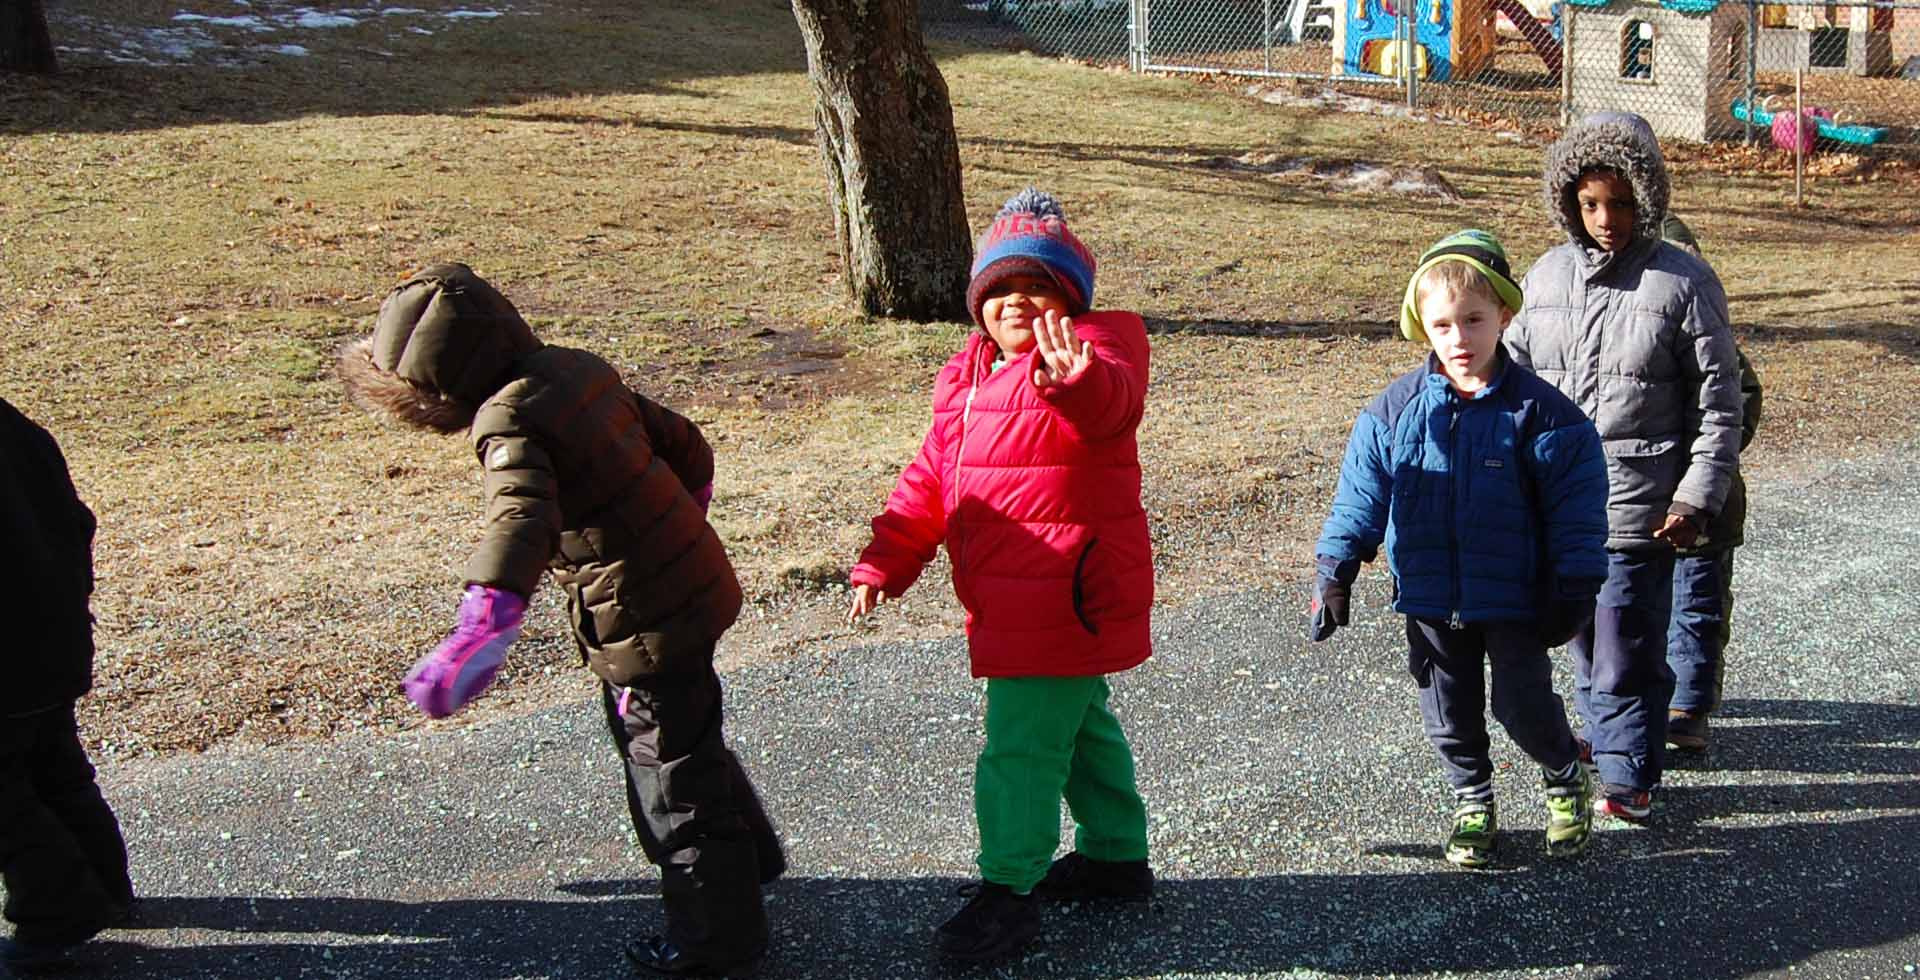 Group of students dressed for winter go to playground